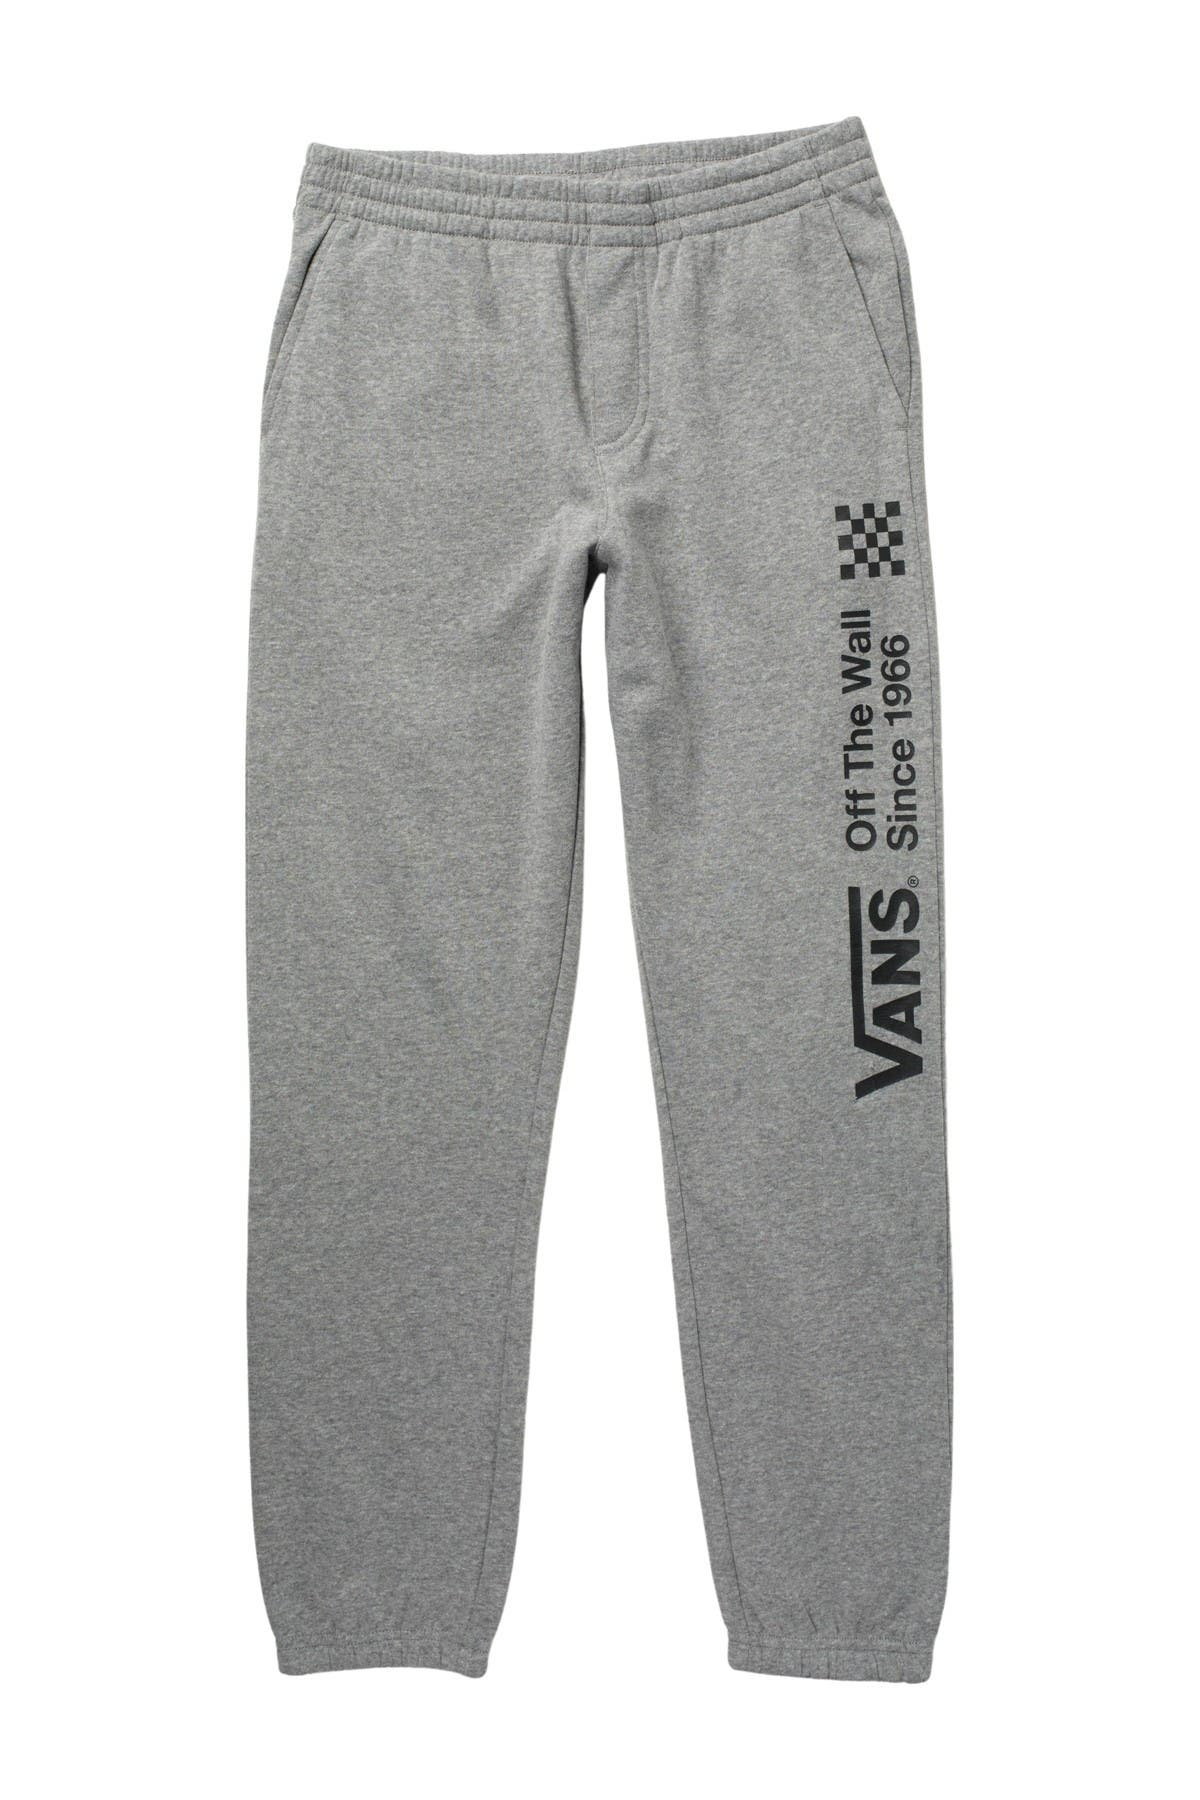 Image of VANS By Relaxed Sweatpants